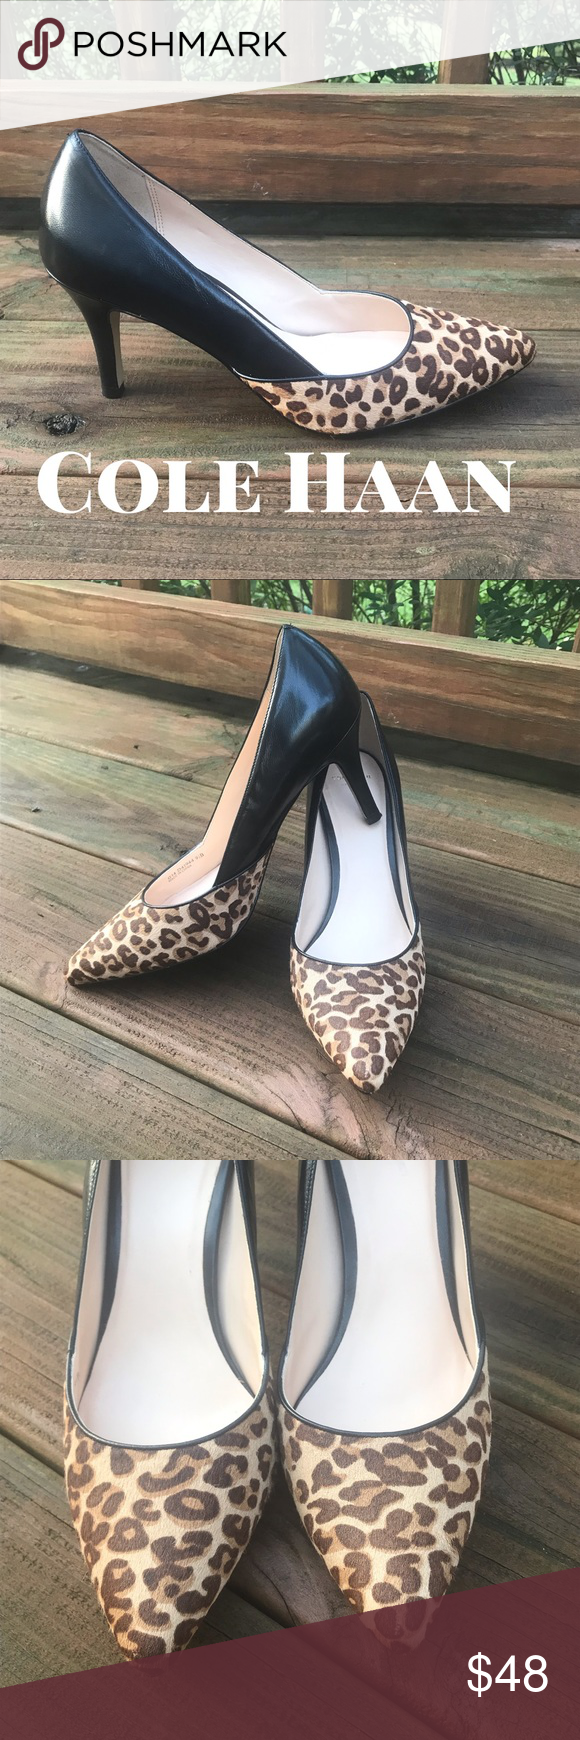 a917971ff426 Cole Haan Rendon ll Leopard Print   Cow Hair Pump ▫️Excellent Preloved  Condition Leather Heels ▫️Stylish Leopard Cow Hair Detail ▫️Pointed Toe ...